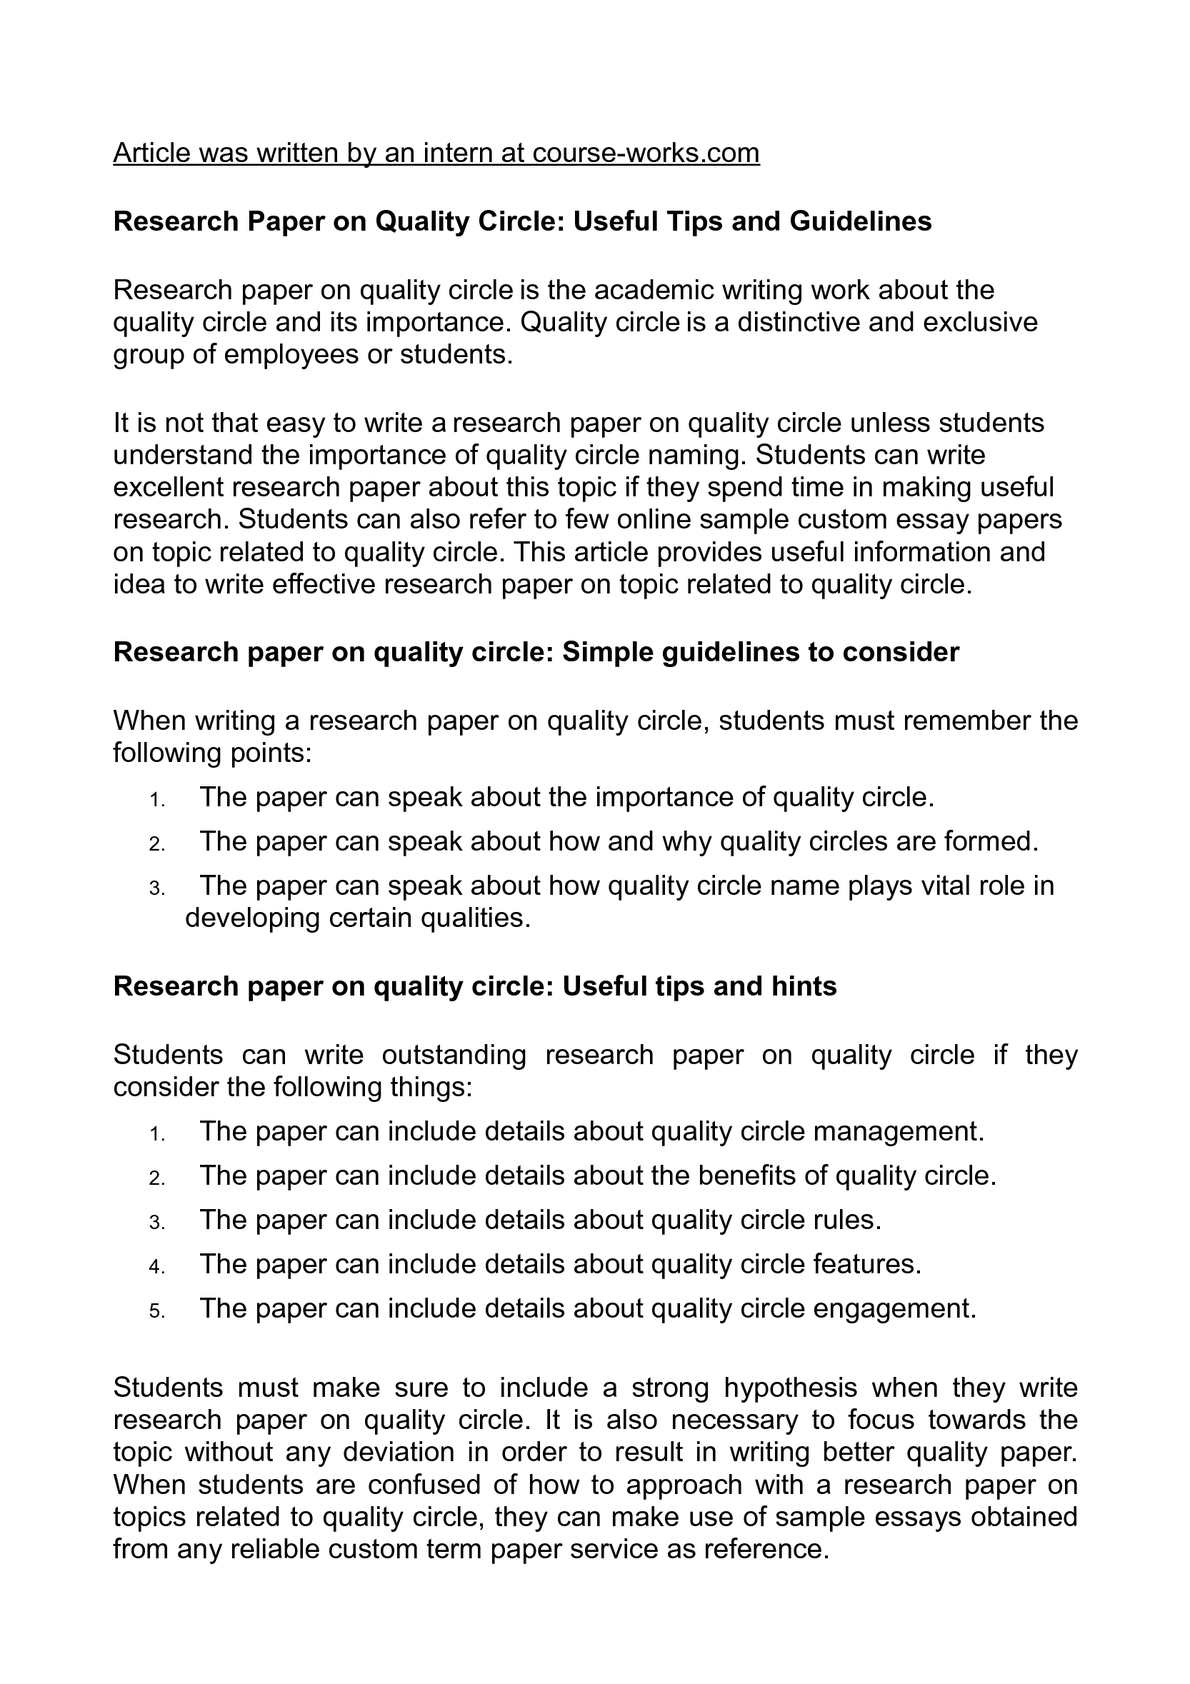 012 P1 Already Written Researchs Excellent Research Papers For Free Pre Sale Full